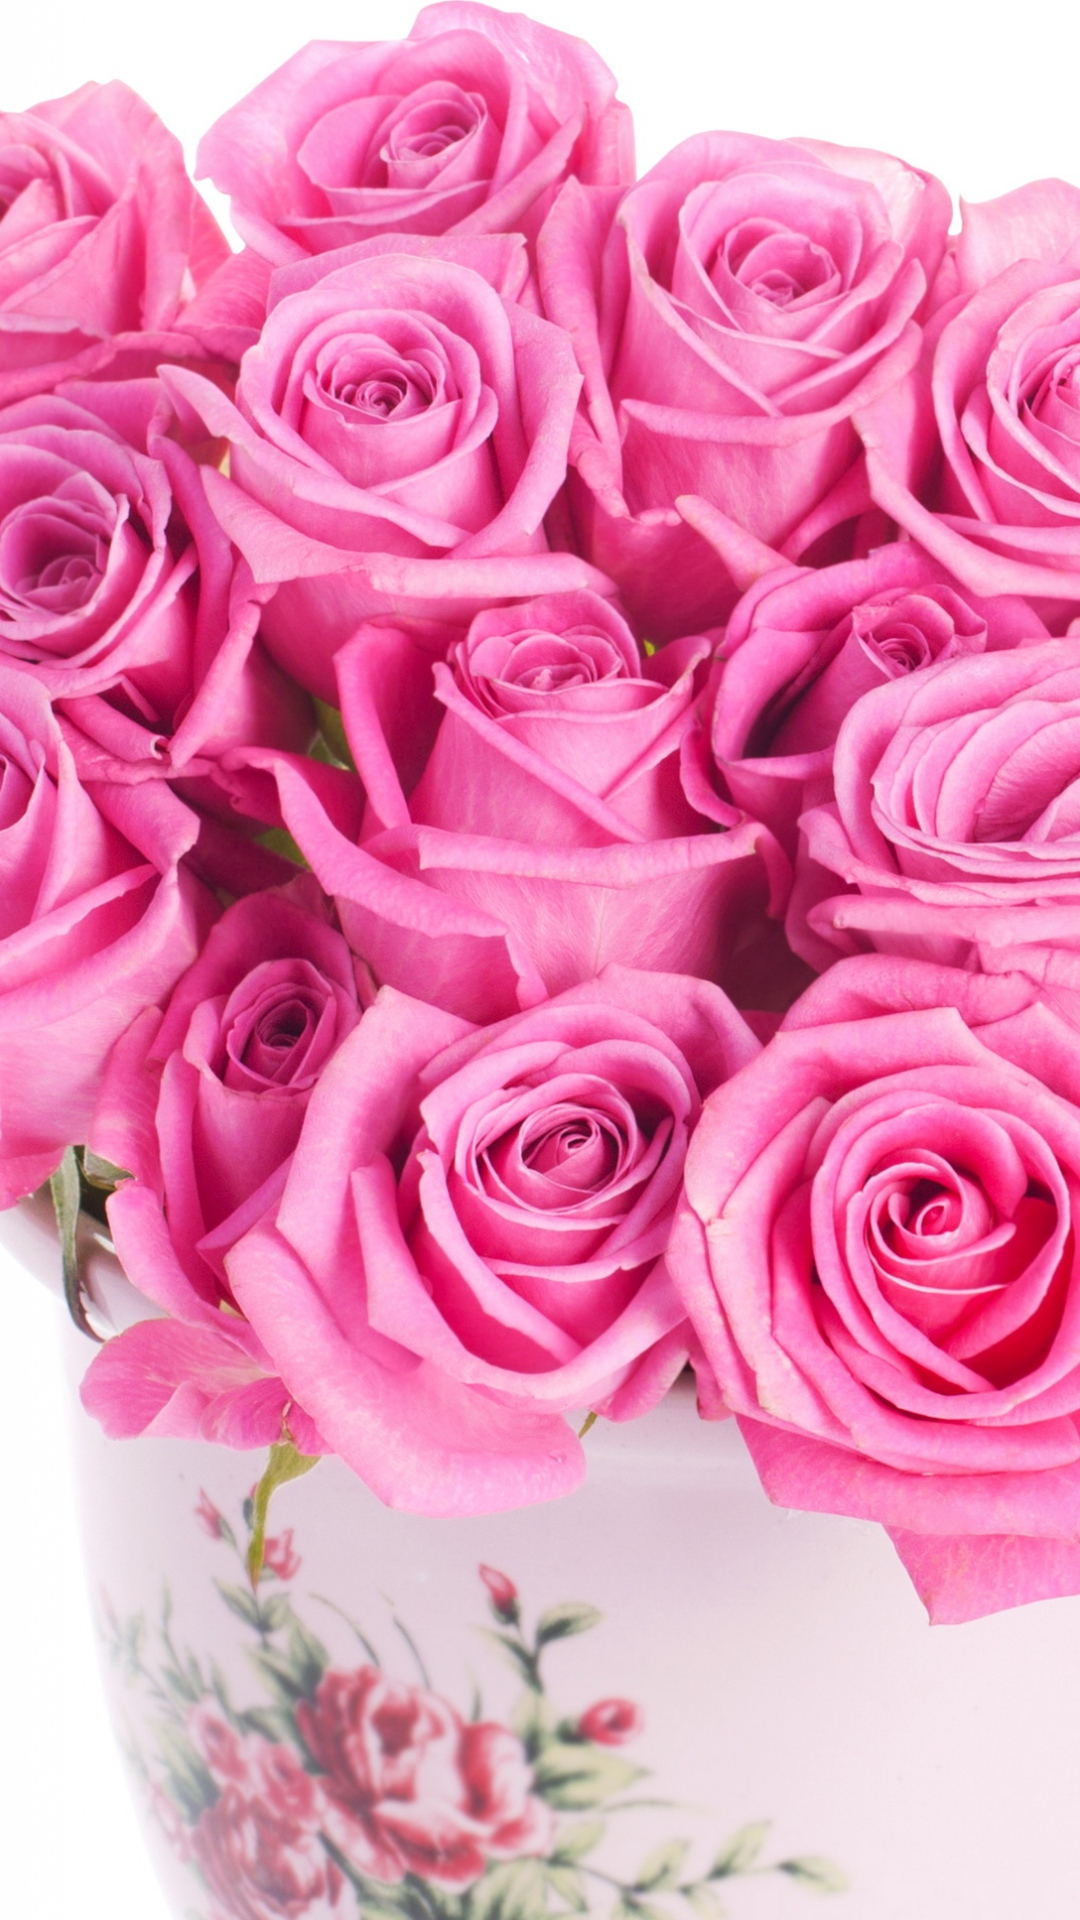 Pink Flower Android Wallpaper Photos Hd Pics Of Androids Bouquet